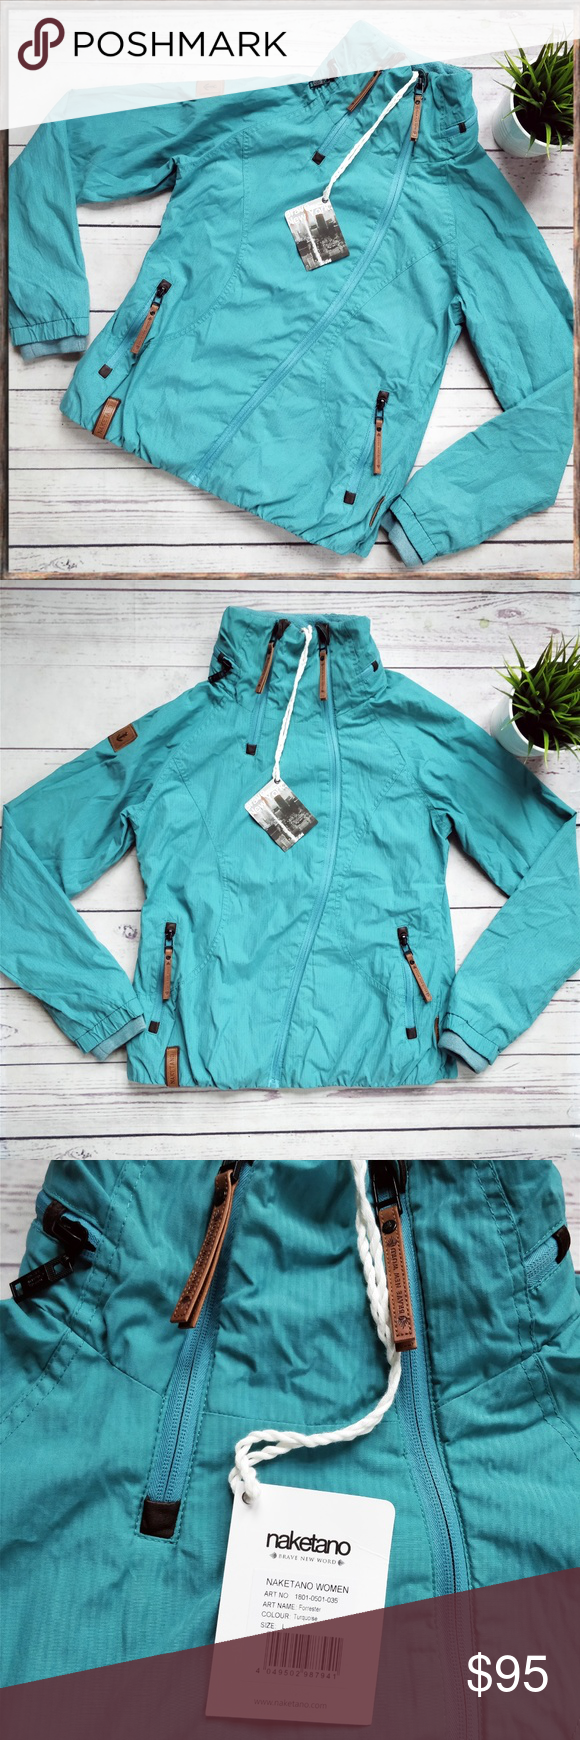 NWT NAKETANO Forrester Turquoise Zip Jacket L This is a cute